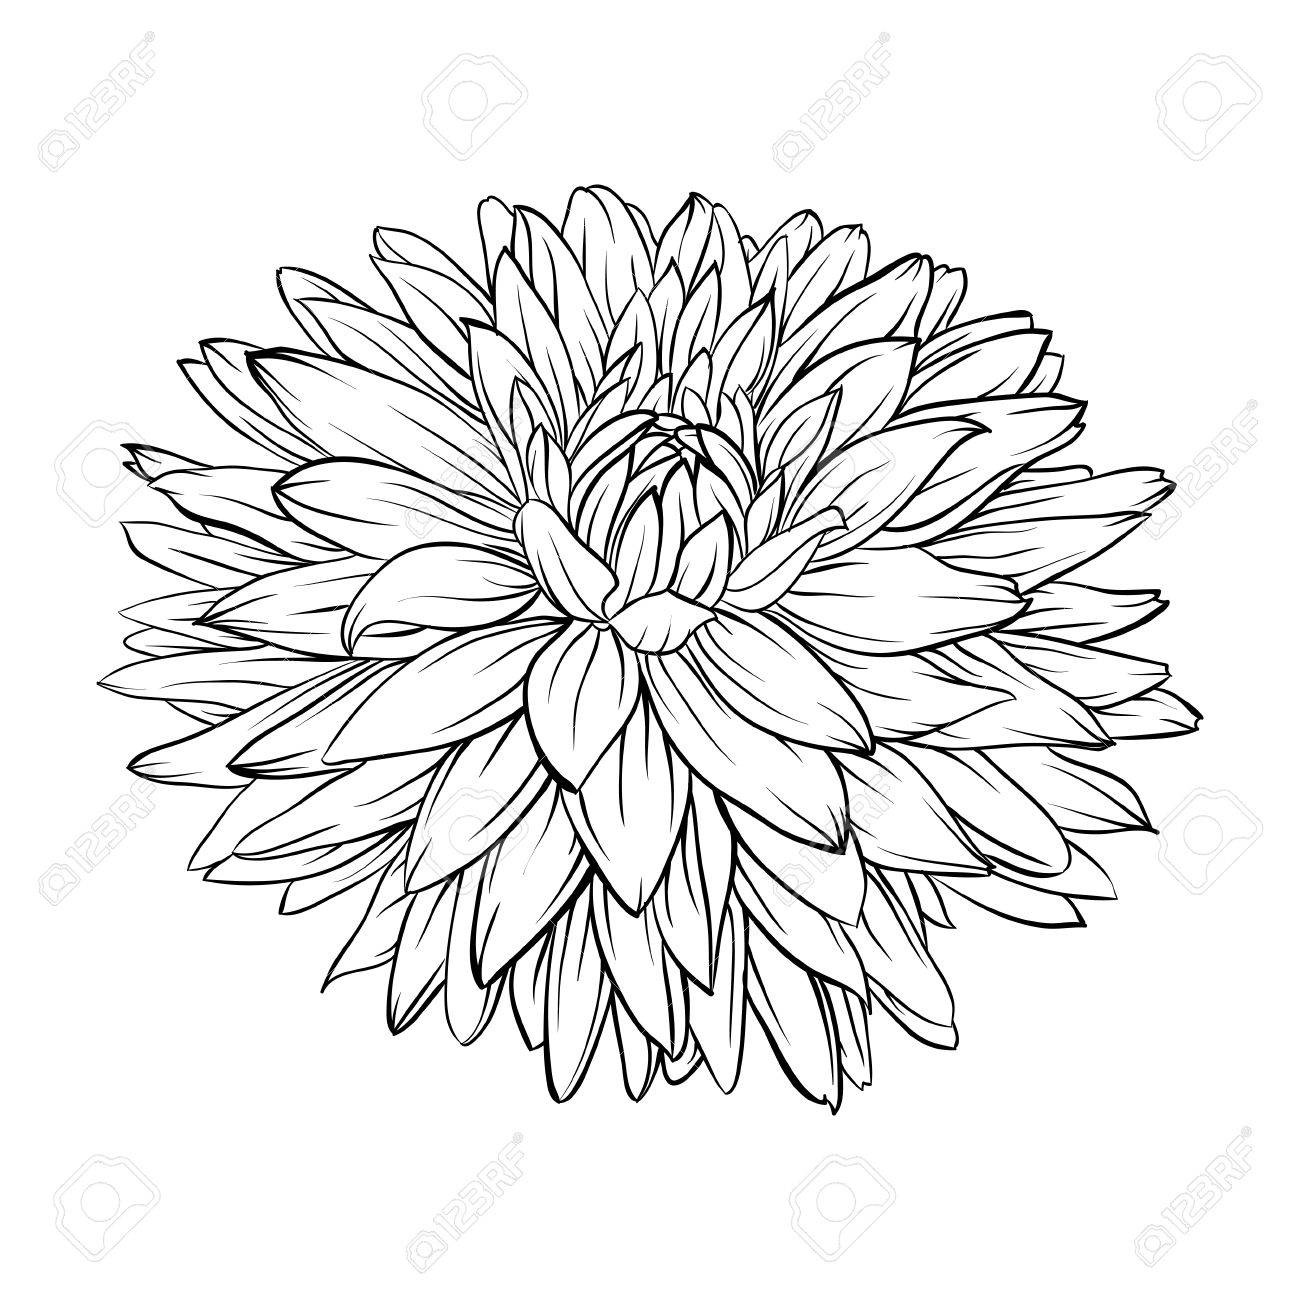 Dahlia flower drawing at getdrawings free for personal use dahlia drawing izmirmasajfo Gallery